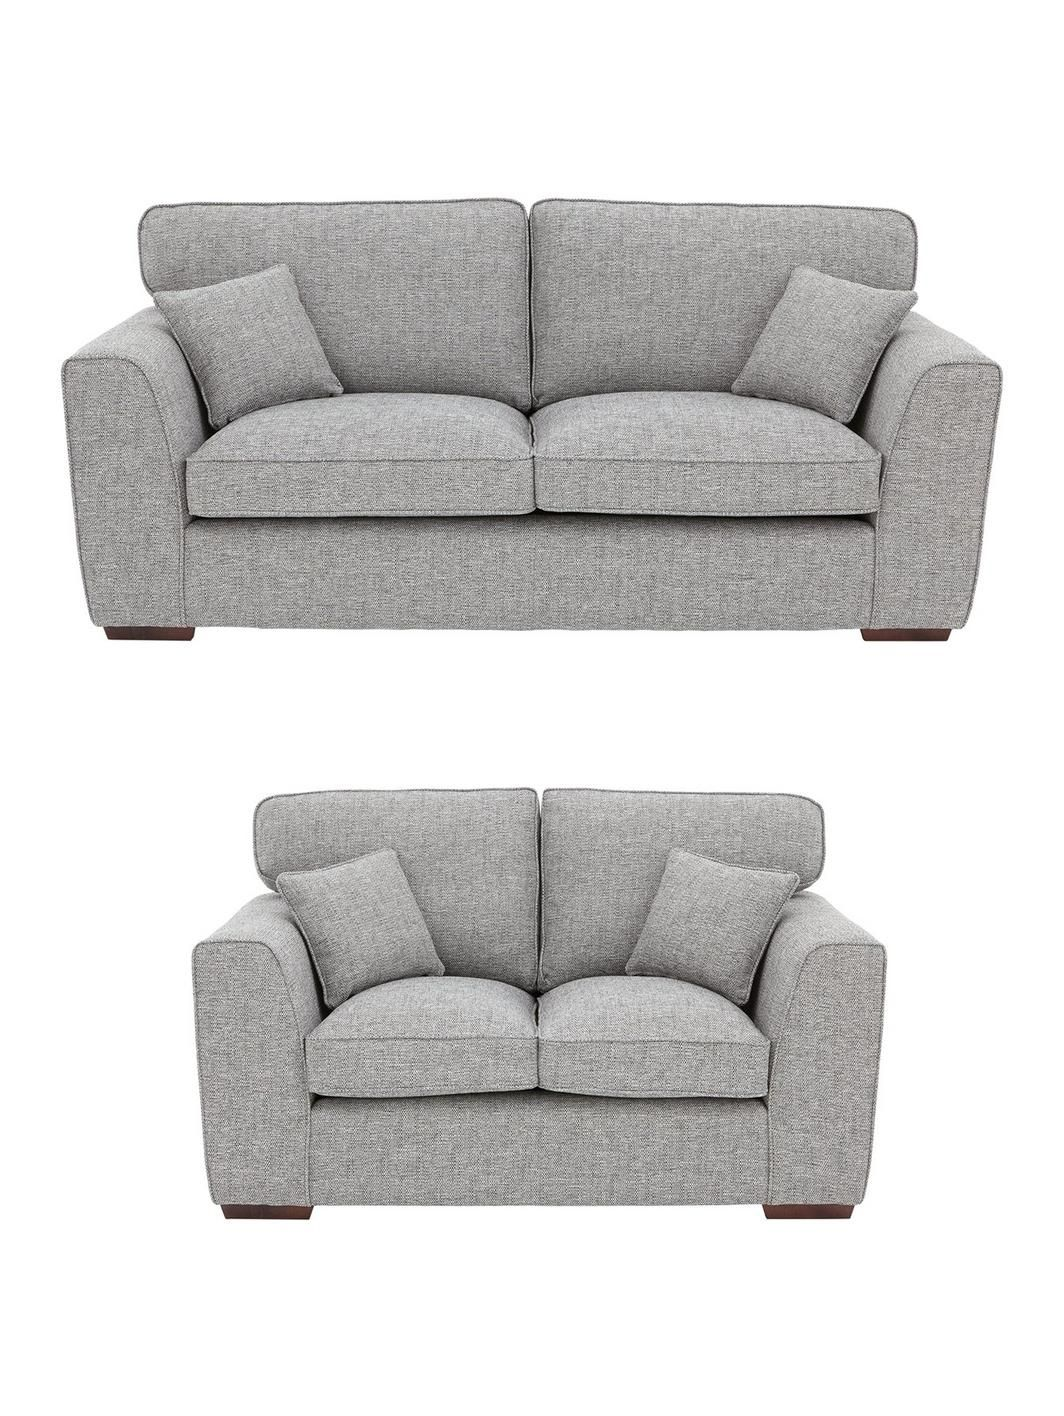 Rio 3 Seater 2 Seater Standard Back Fabric Sofa Set Buy And Save